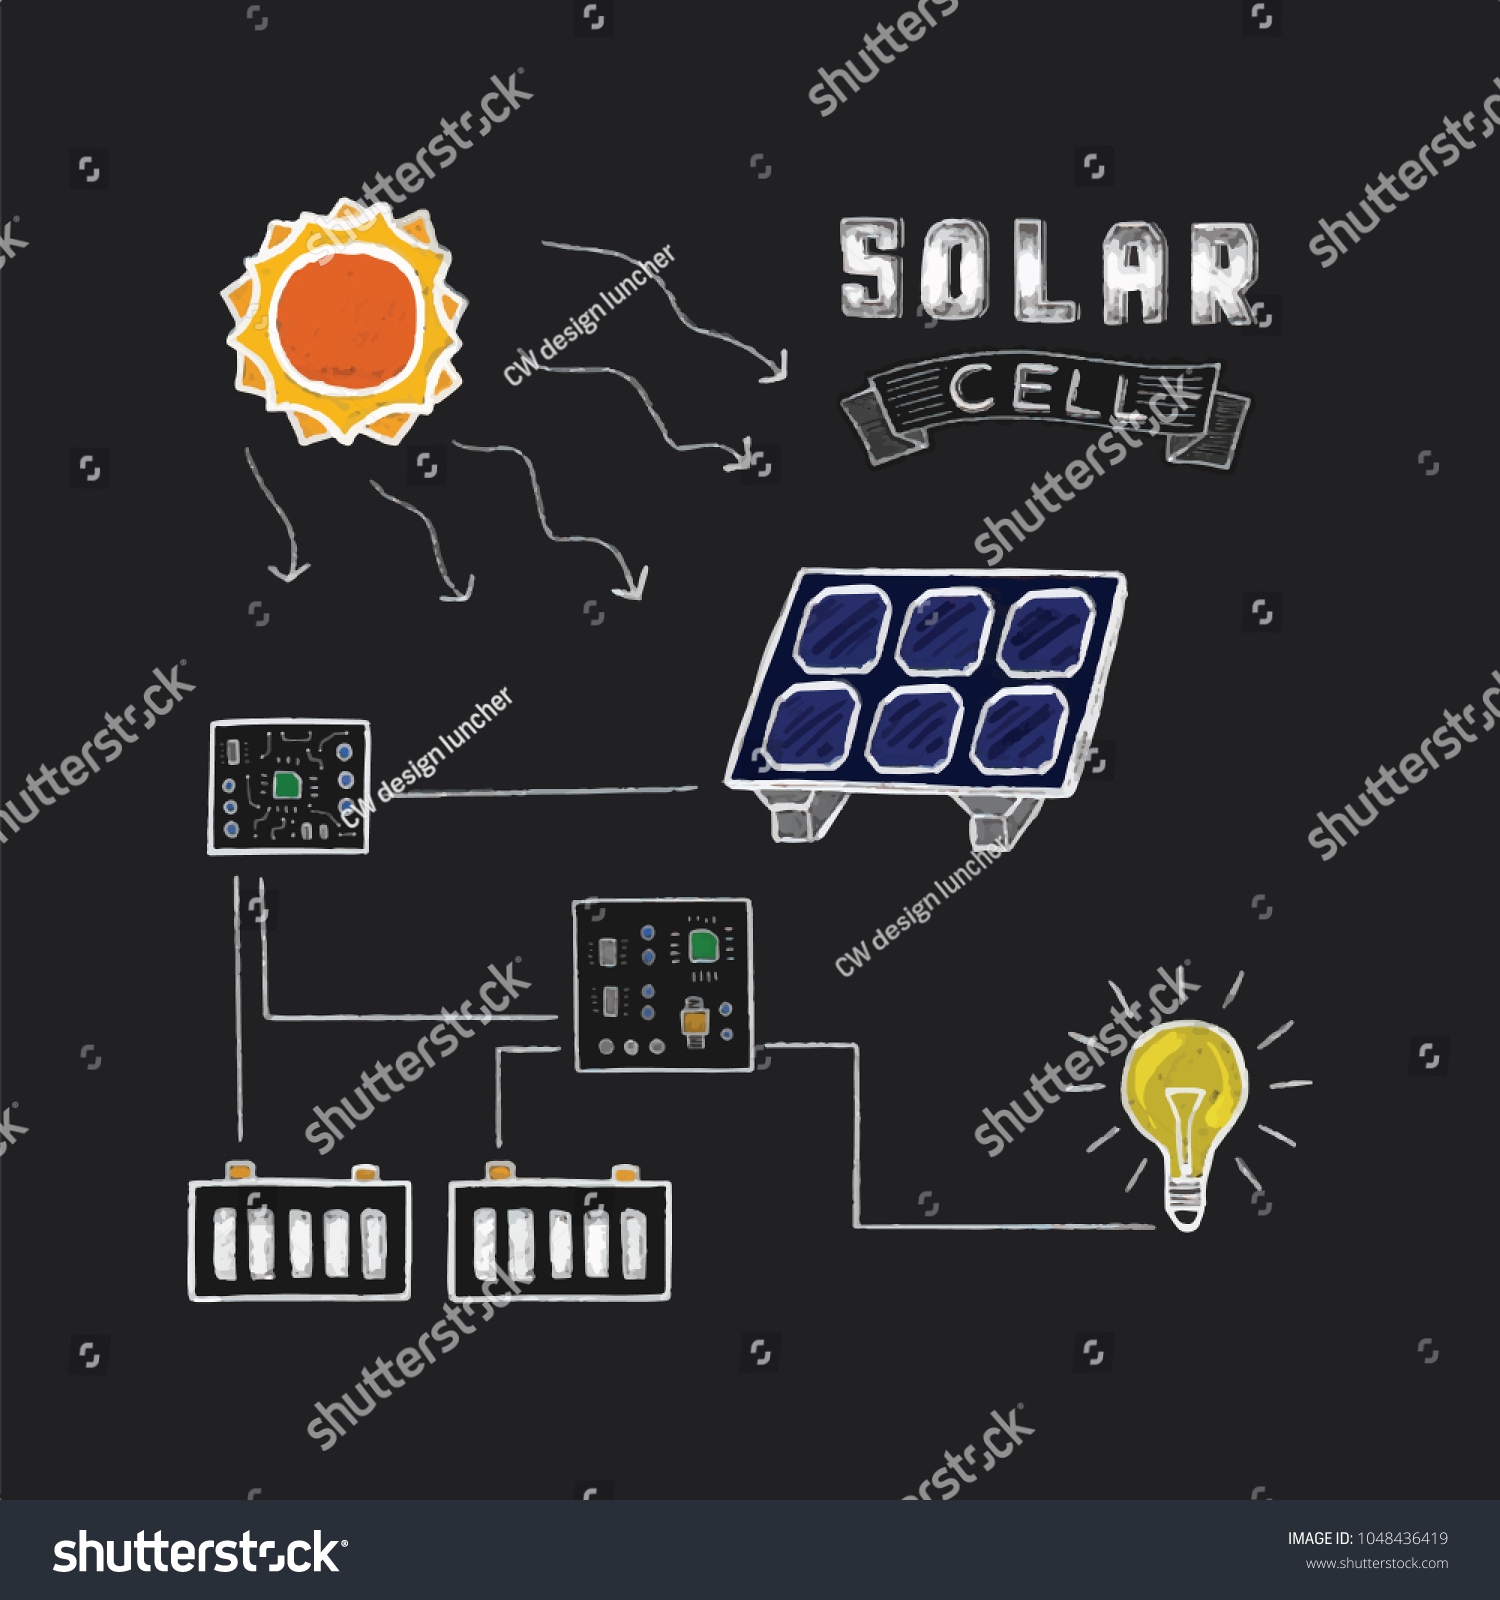 Solar Cell System Simple Circuit Diagram Stock Vector Royalty Free With